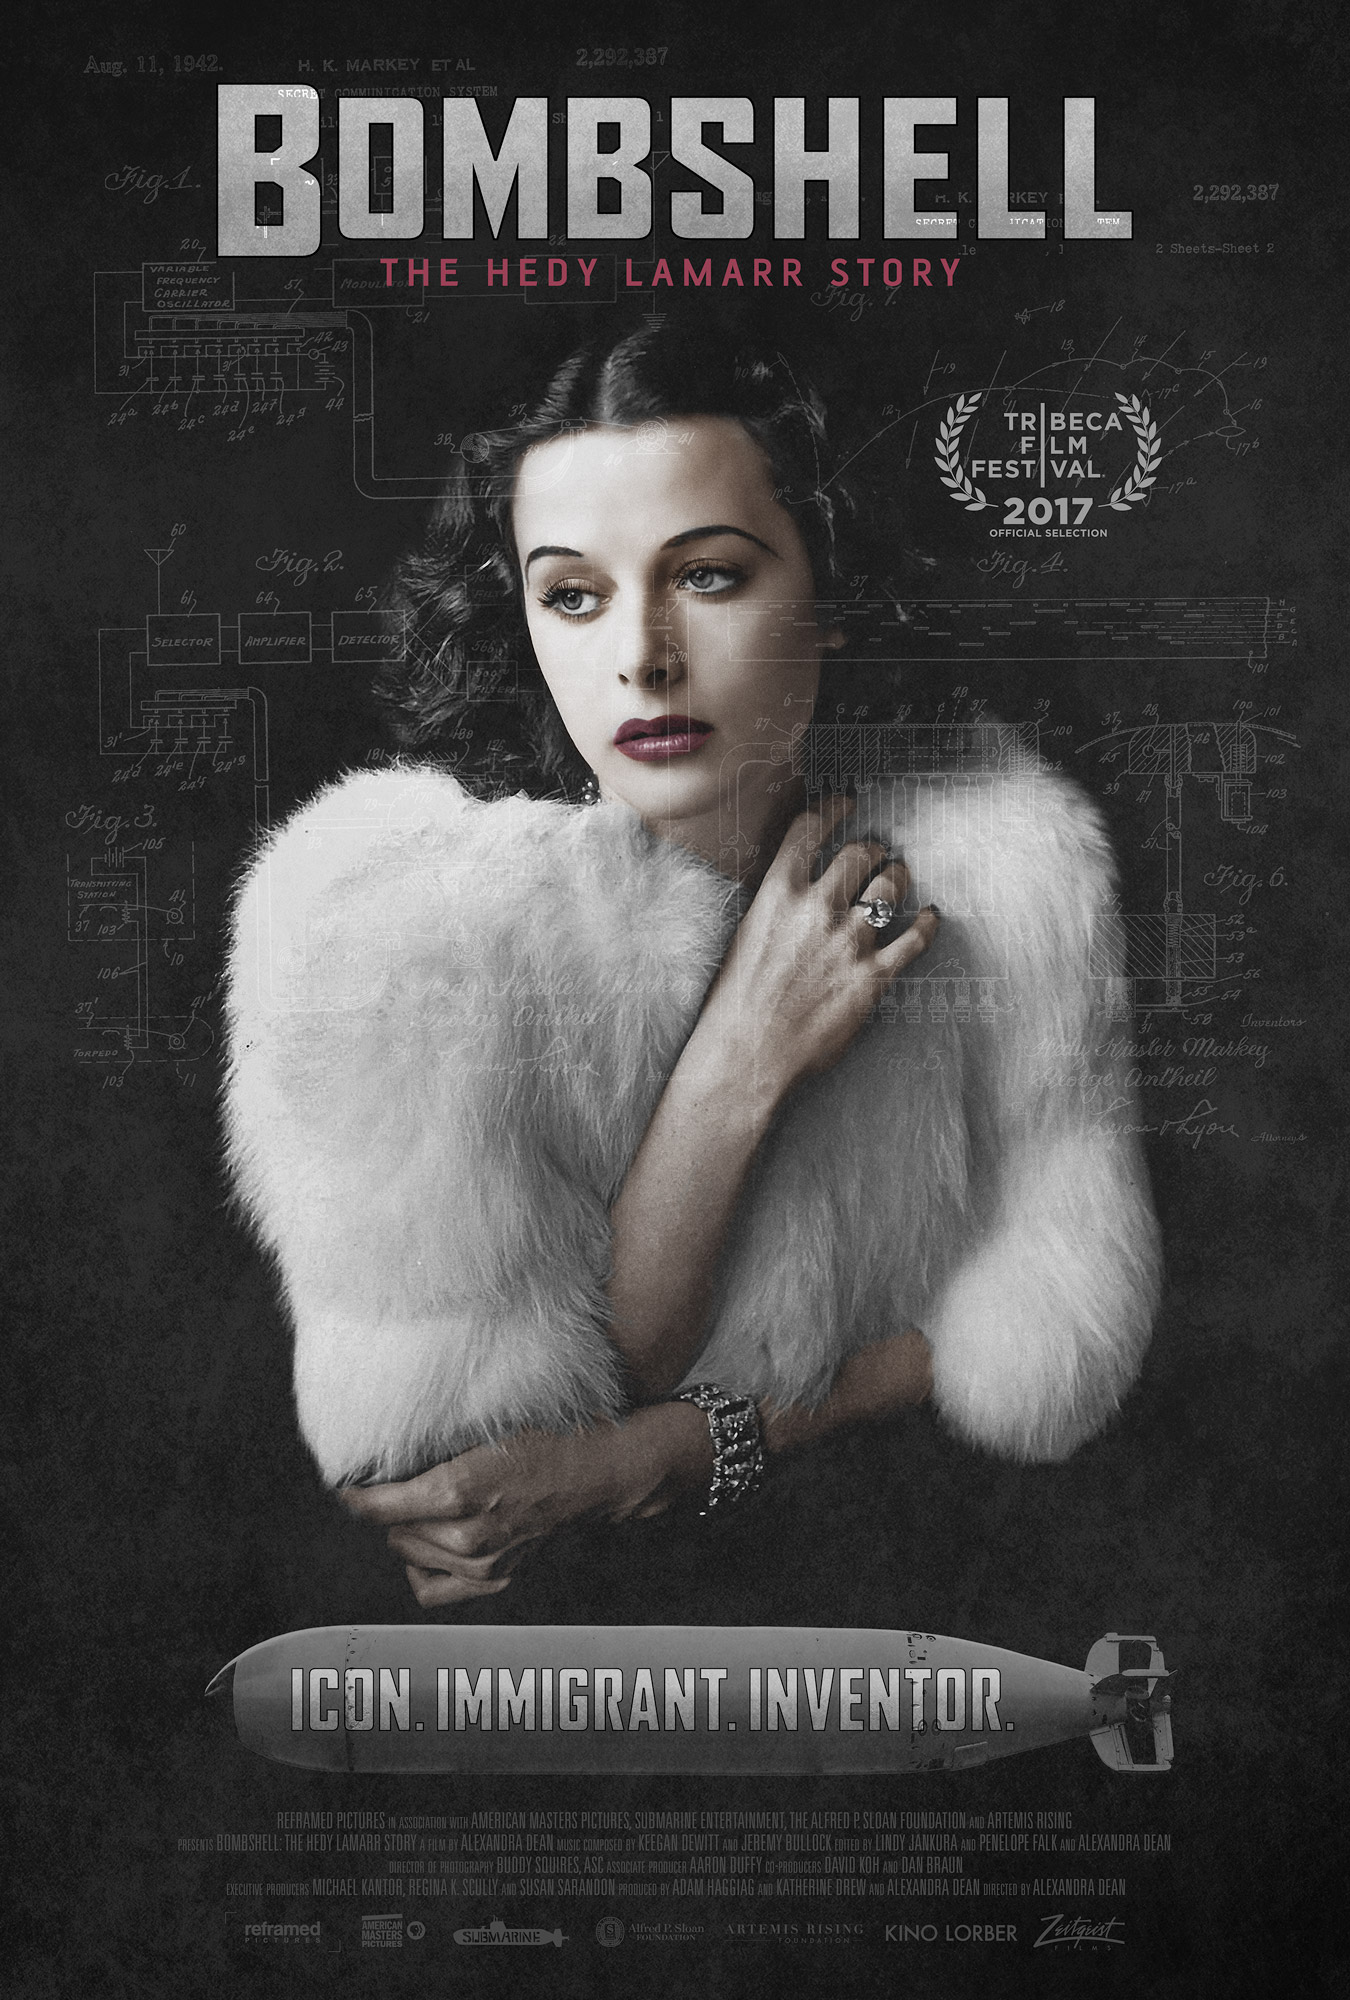 Bombshell: The Hedy Lamarr Story [Blu-ray]